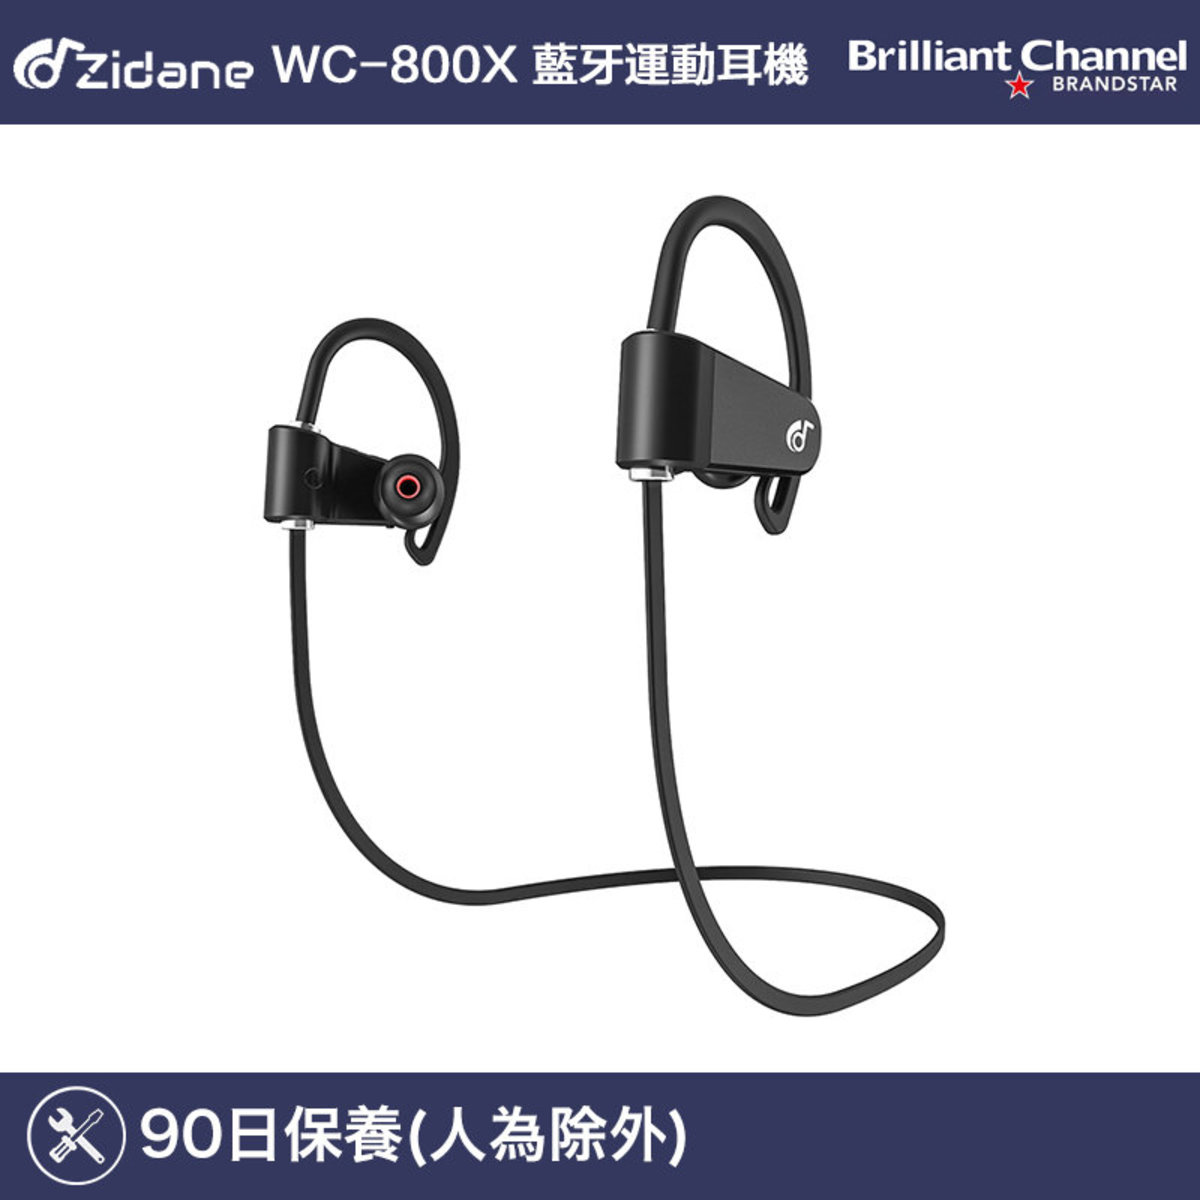 WC-880X Bluetooth Sporty Wireless Earphone (Black)